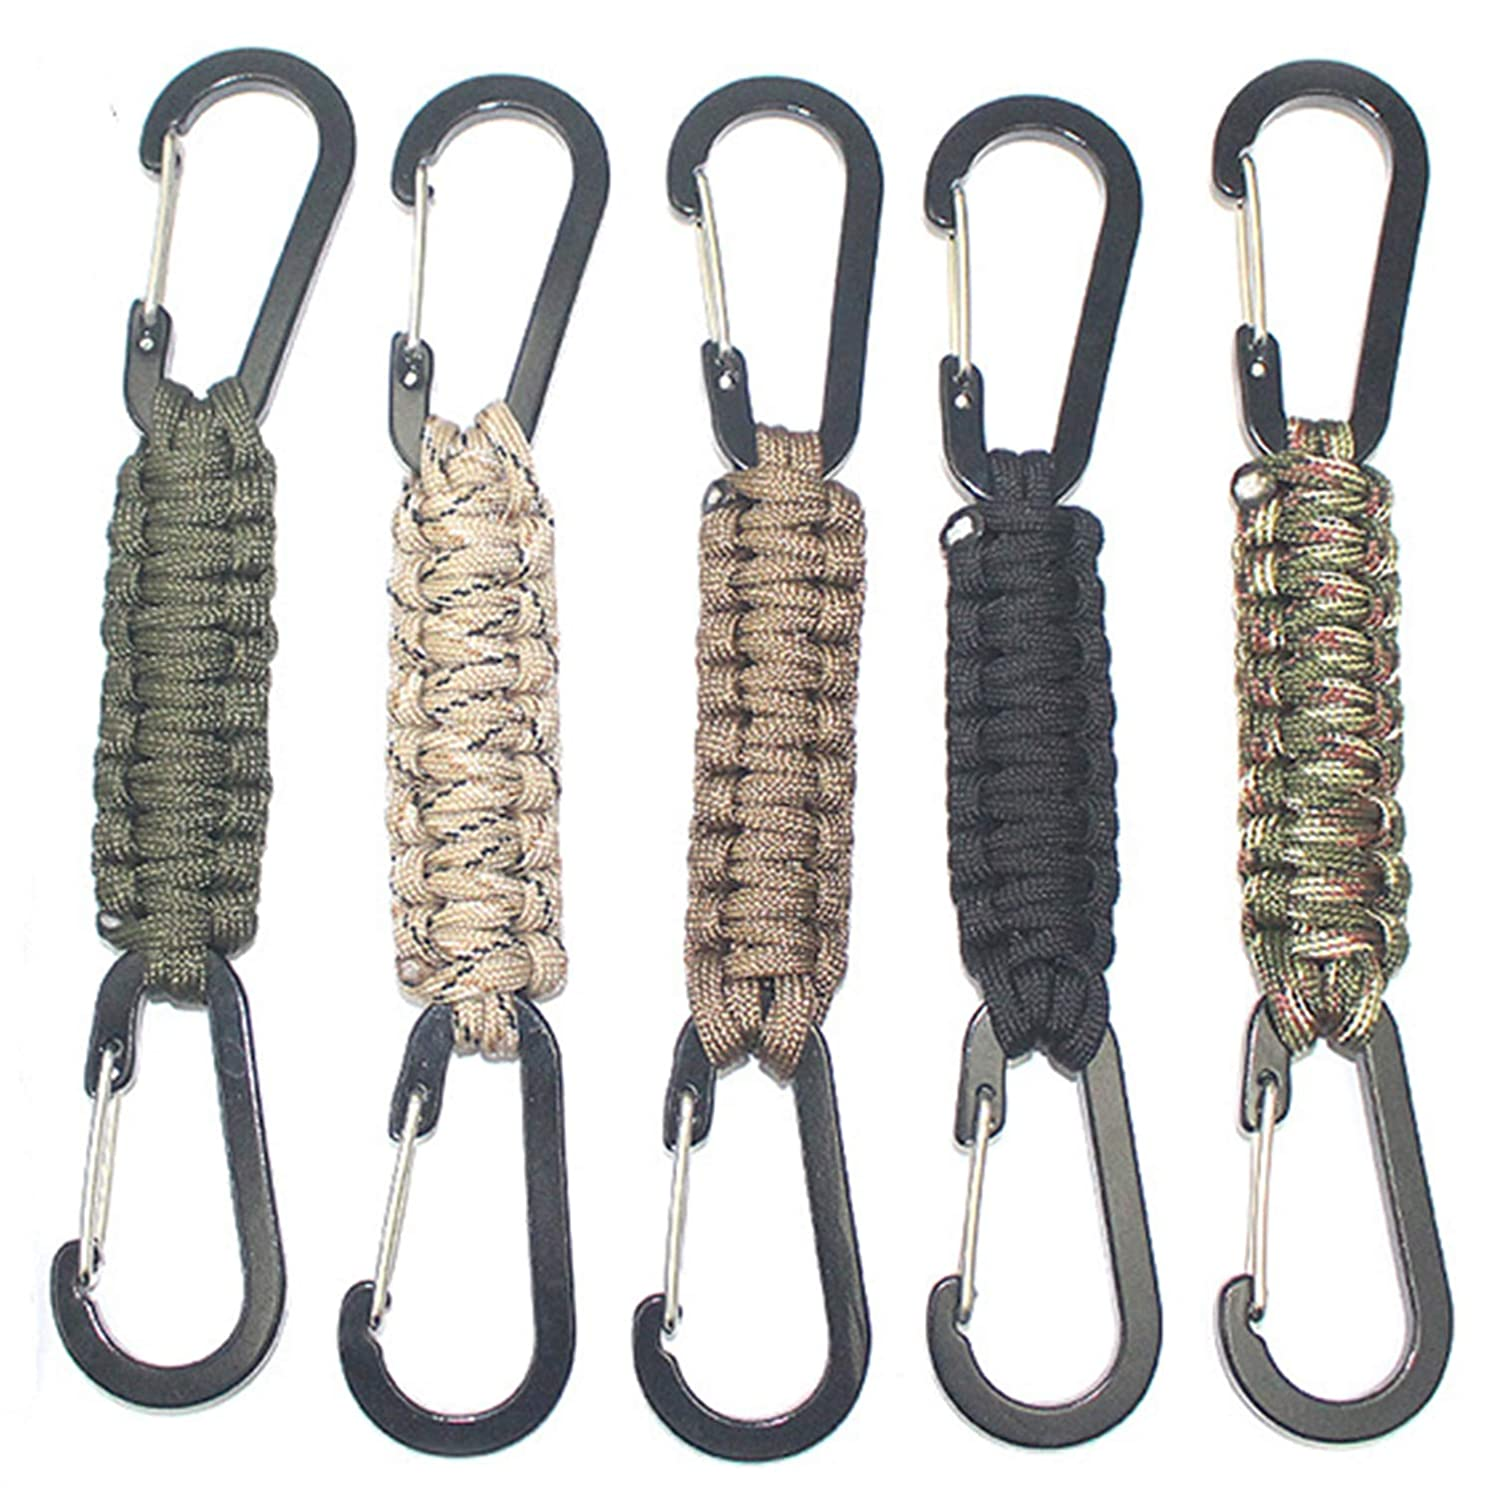 MENG ZHI AO 3 Packs Fence Hooks Outdoor Braided Paracord Carabiner Hanging Hooks Perfect Fence Hook for Water Bottles Bat Bags Tennis Bags,Camping,Hanging Tools Backpack